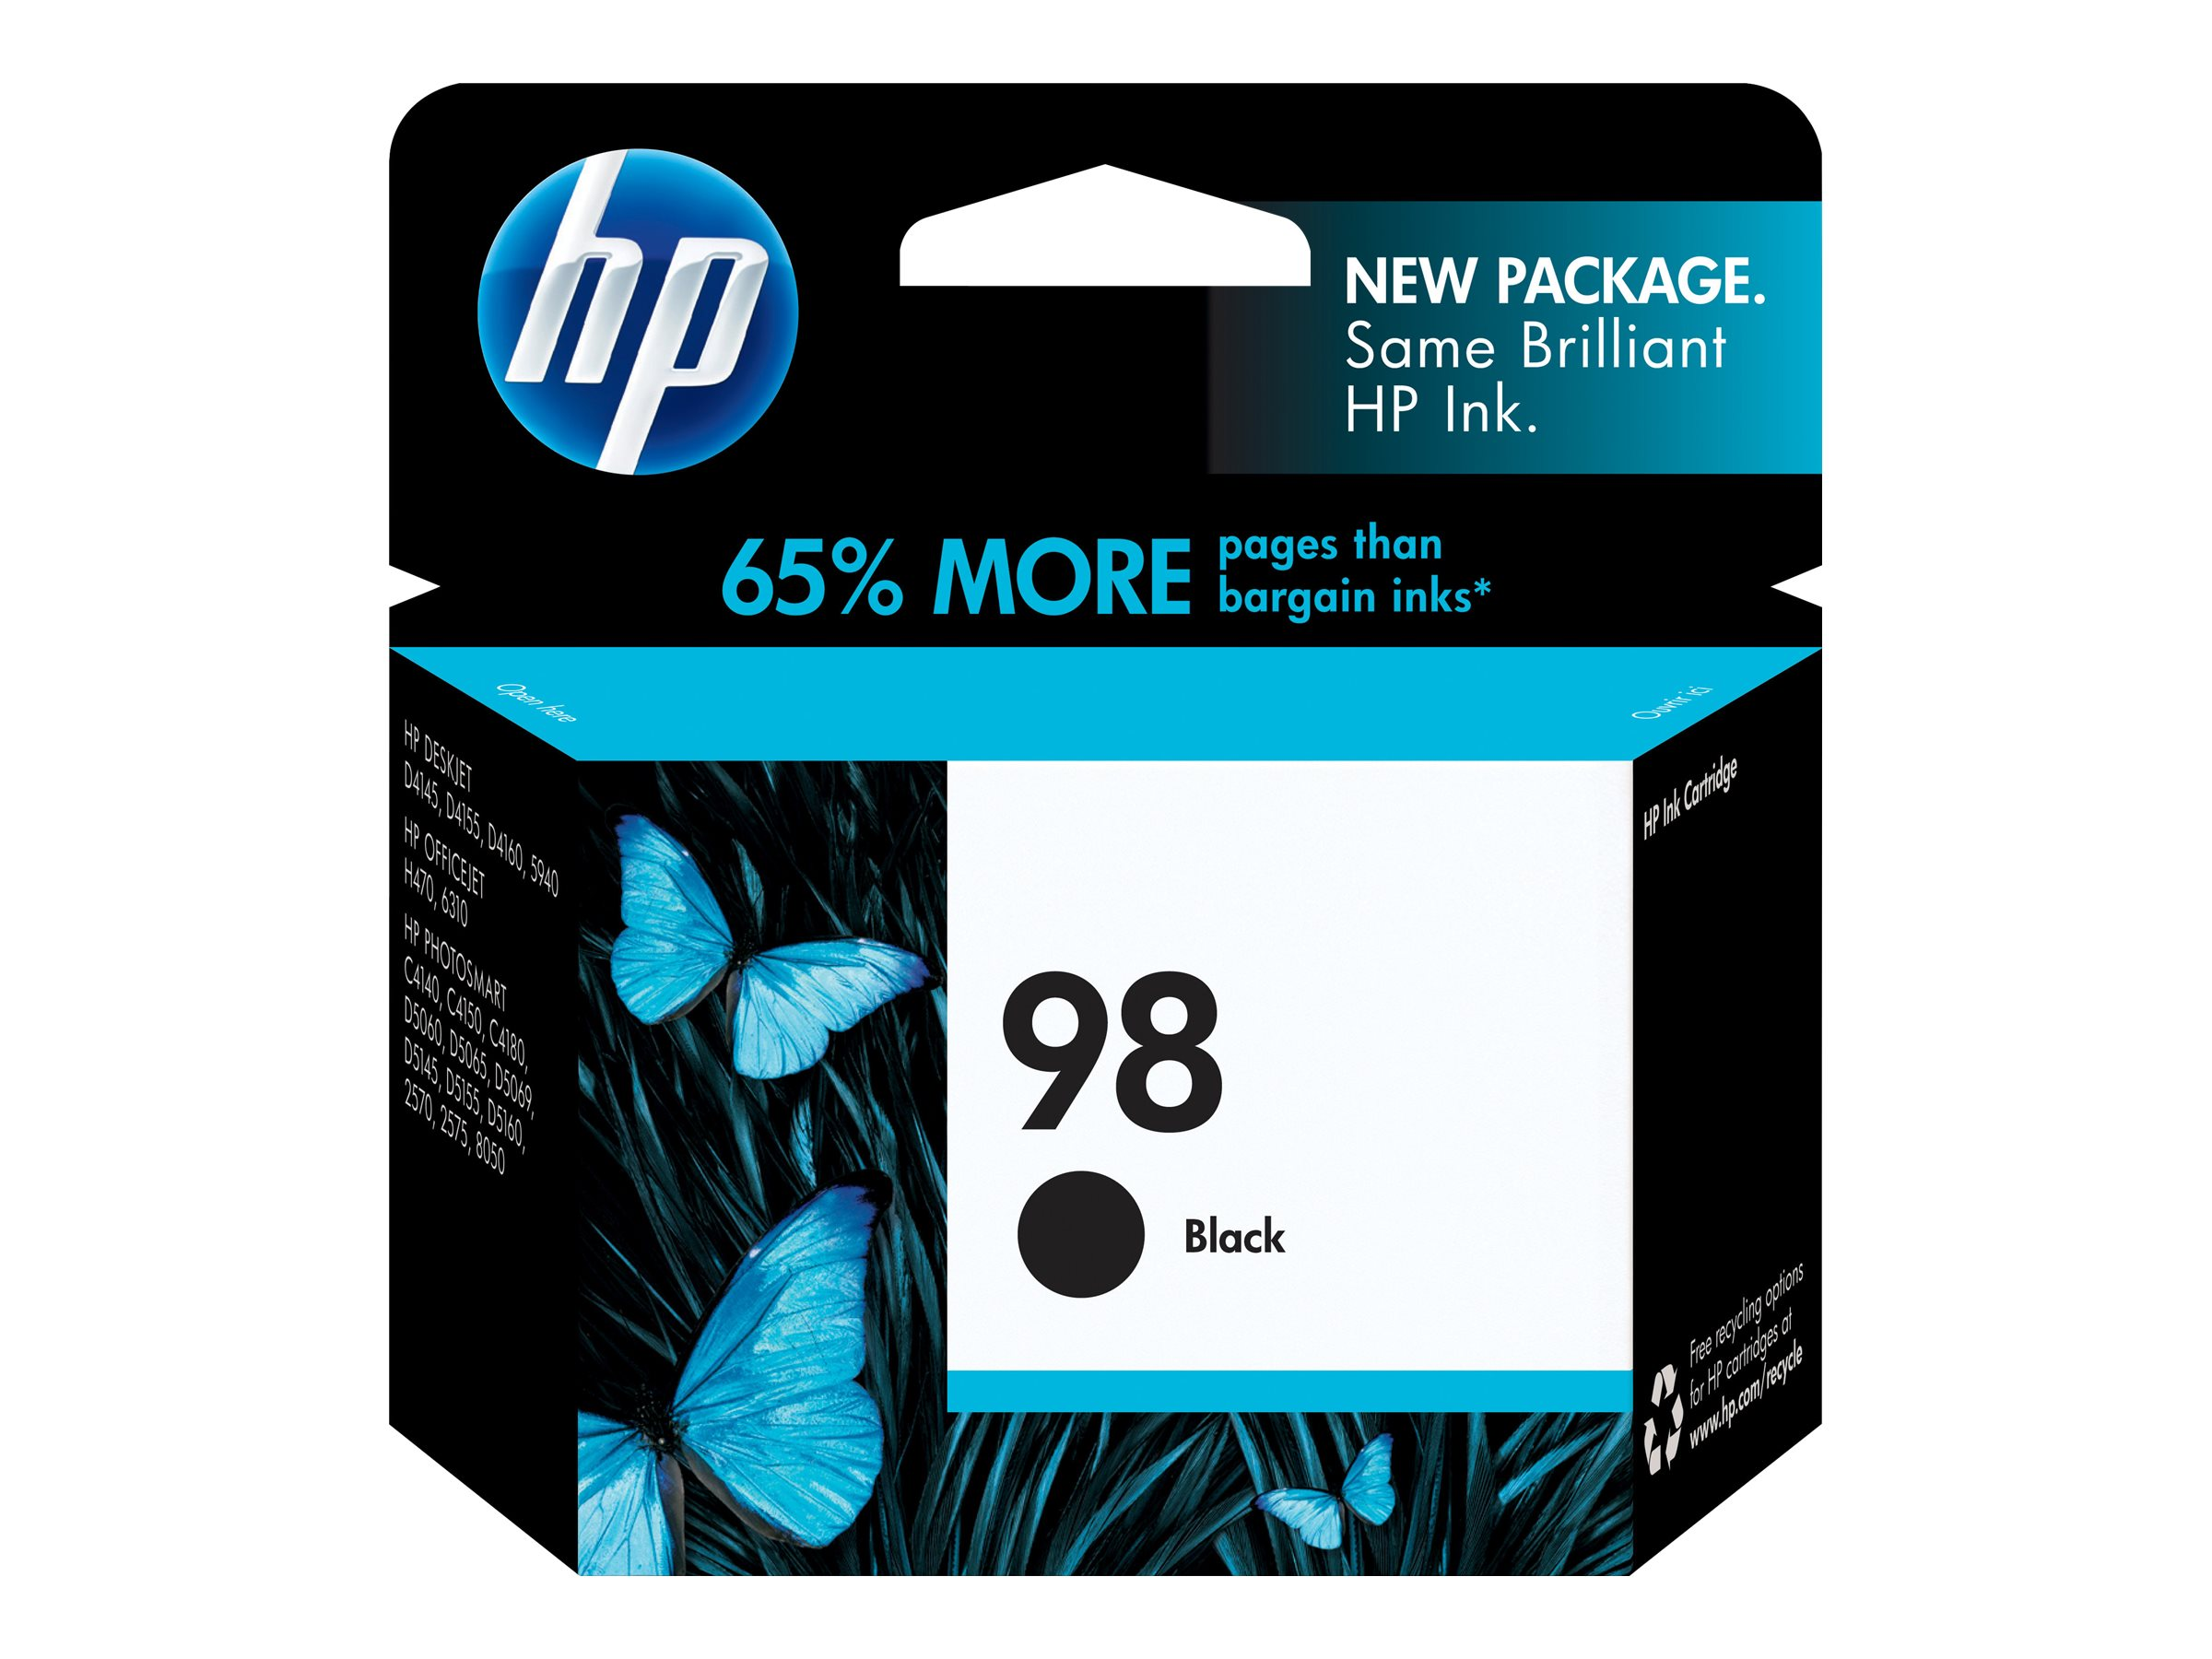 HP Inc. C9364WN#140 Image 1